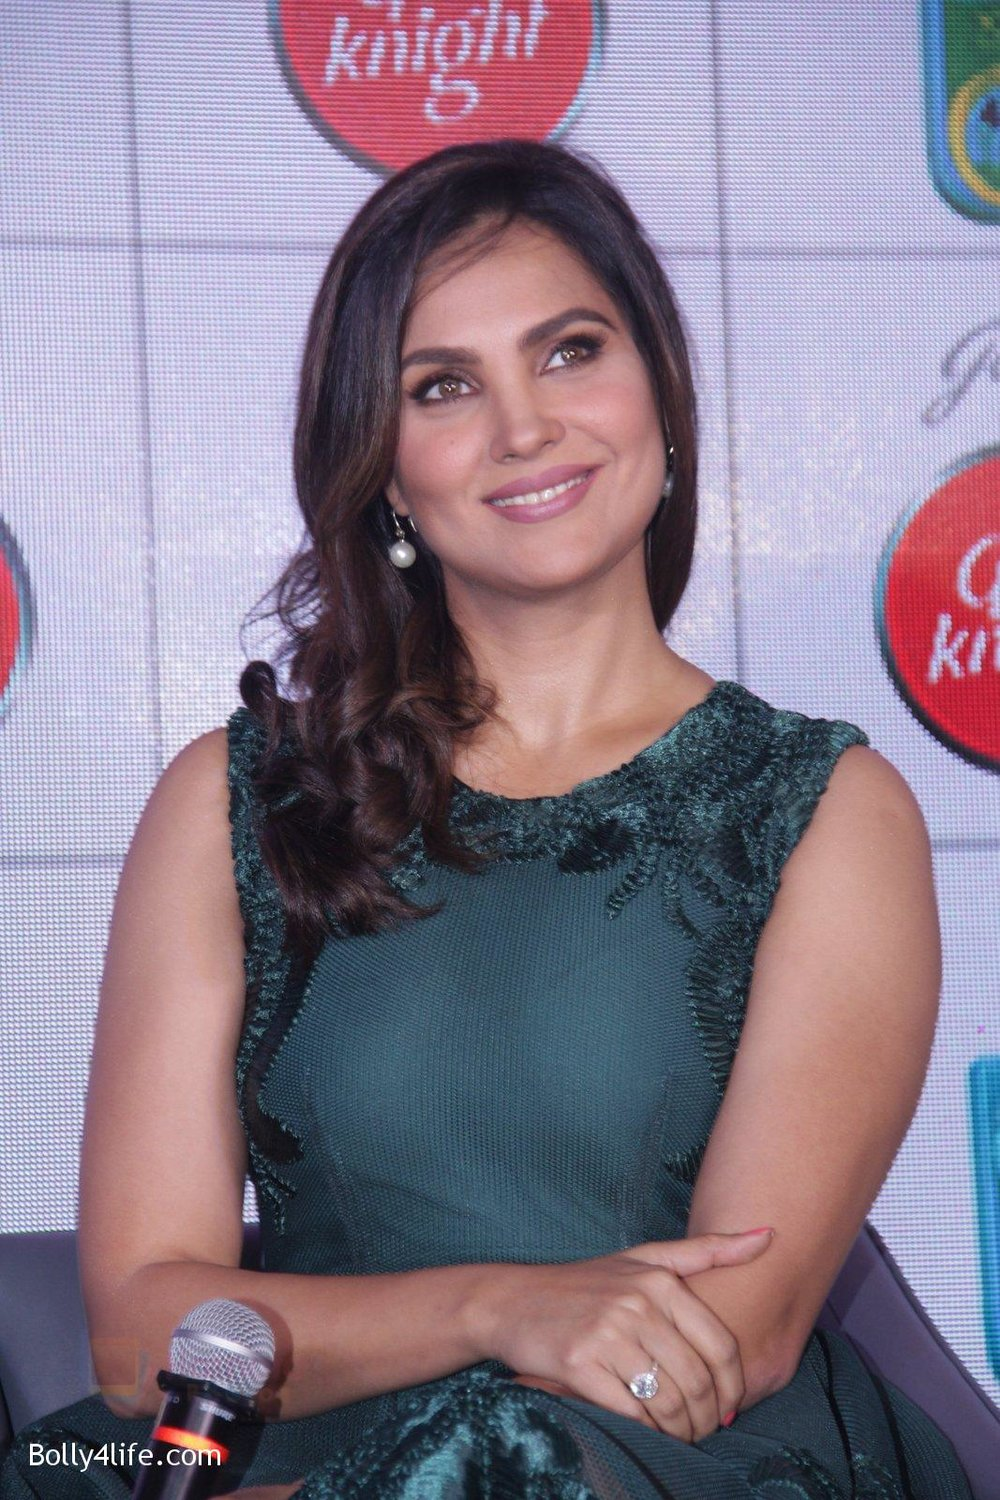 Lara-Dutta-promotes-Good-Night-on-29th-Sept-2016-15.jpg